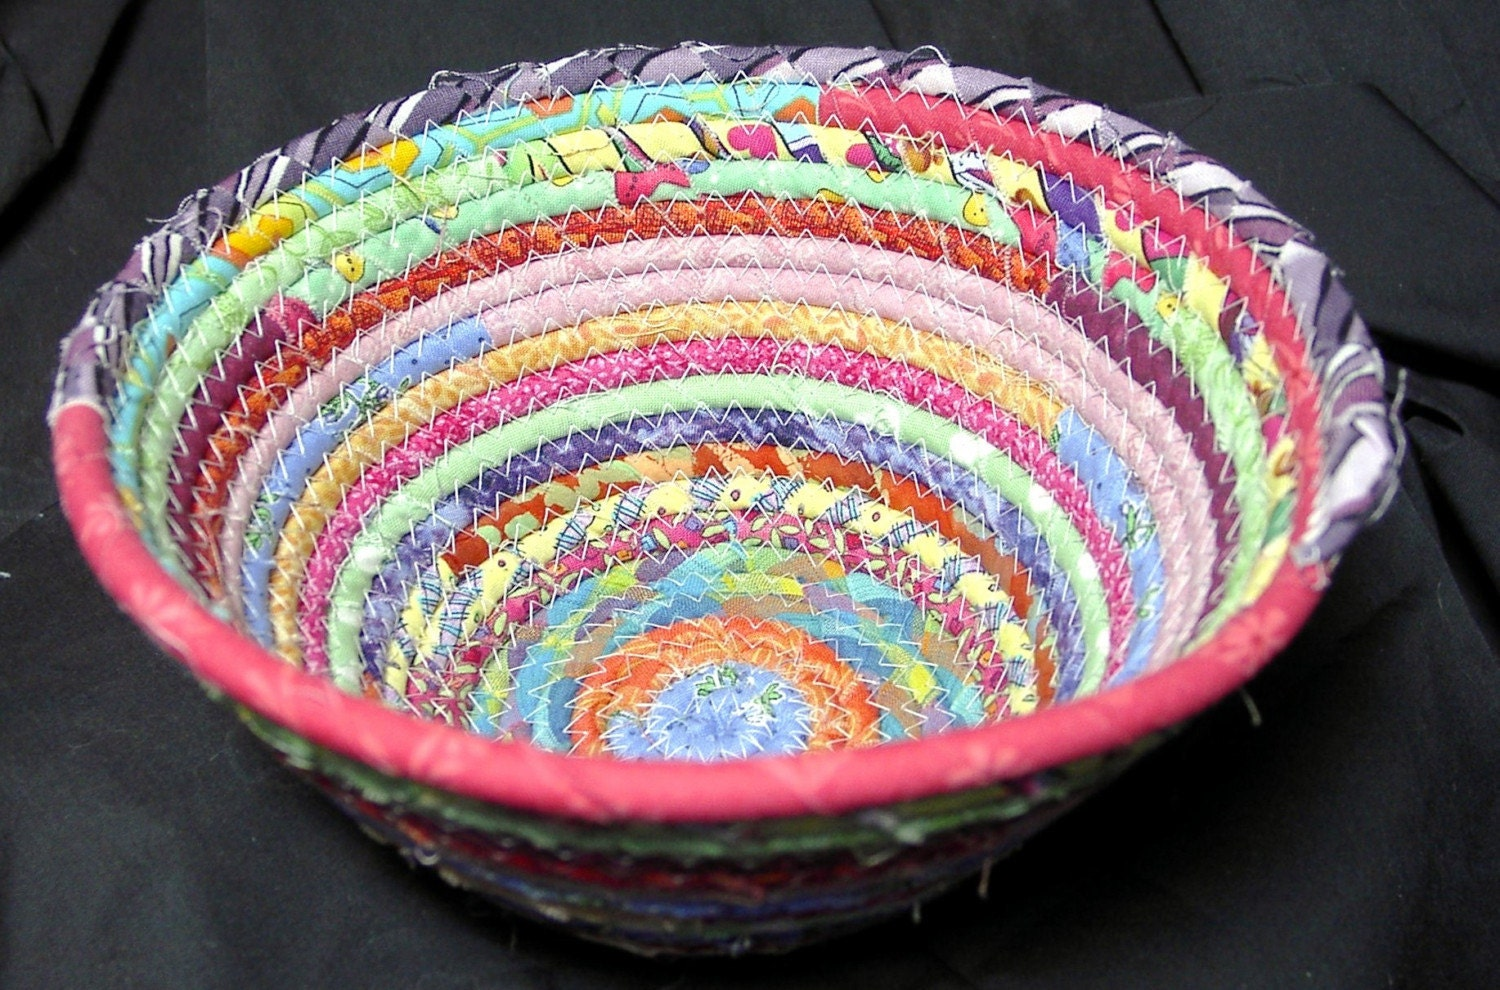 How To Weave A Basket From Fabric : Soft woven fabric basket